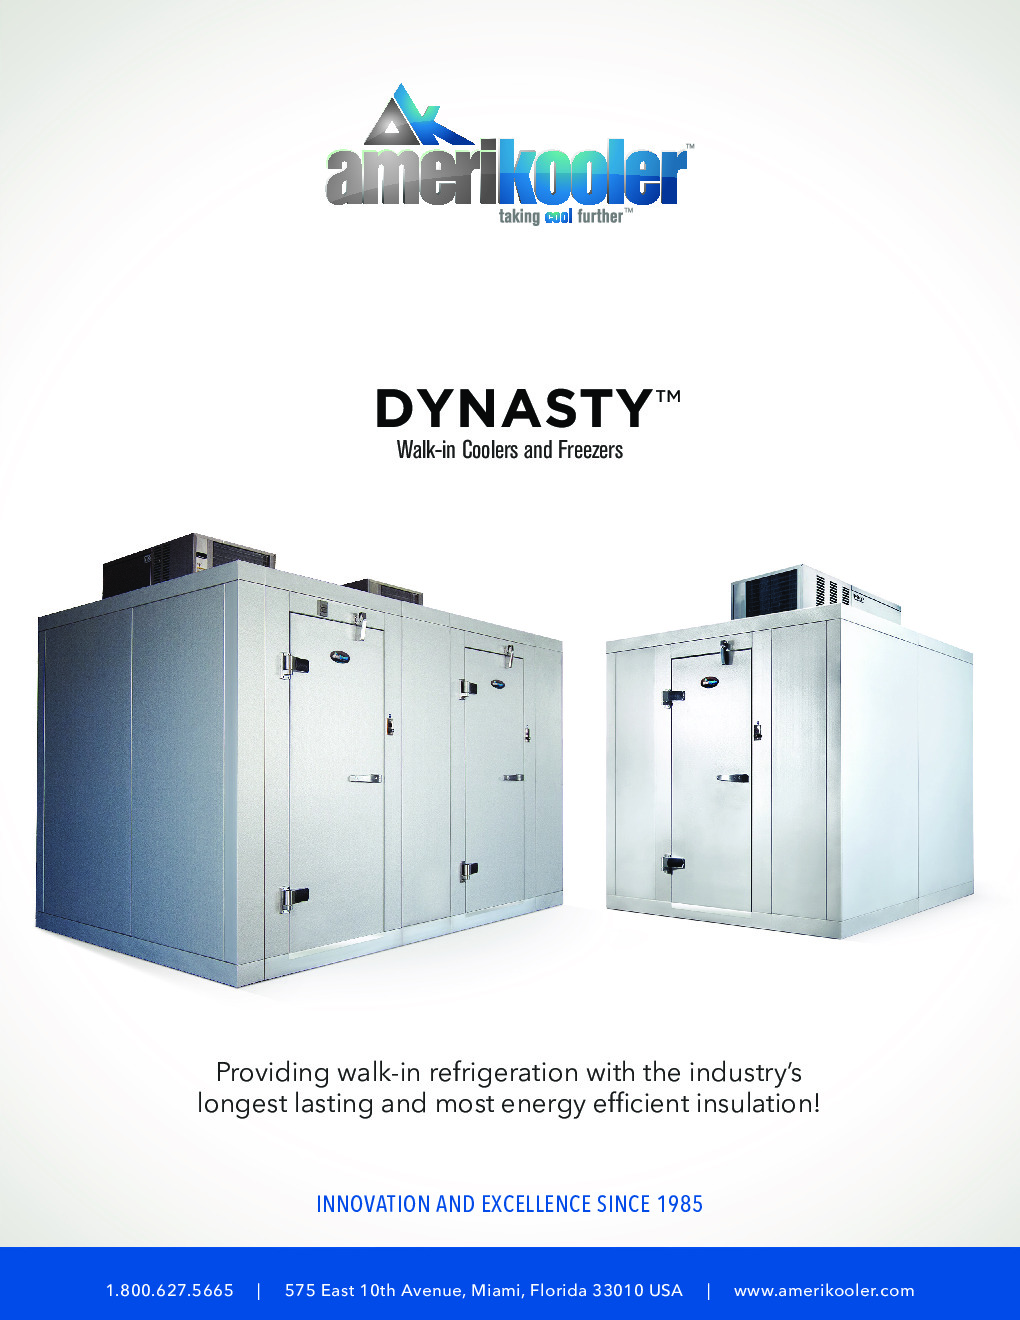 AmeriKooler DW071377F-6/7-SC 7' X 13' Walk-In Cooler, 7' L Cooler with Floor and 6' L Freezer, Self Contained